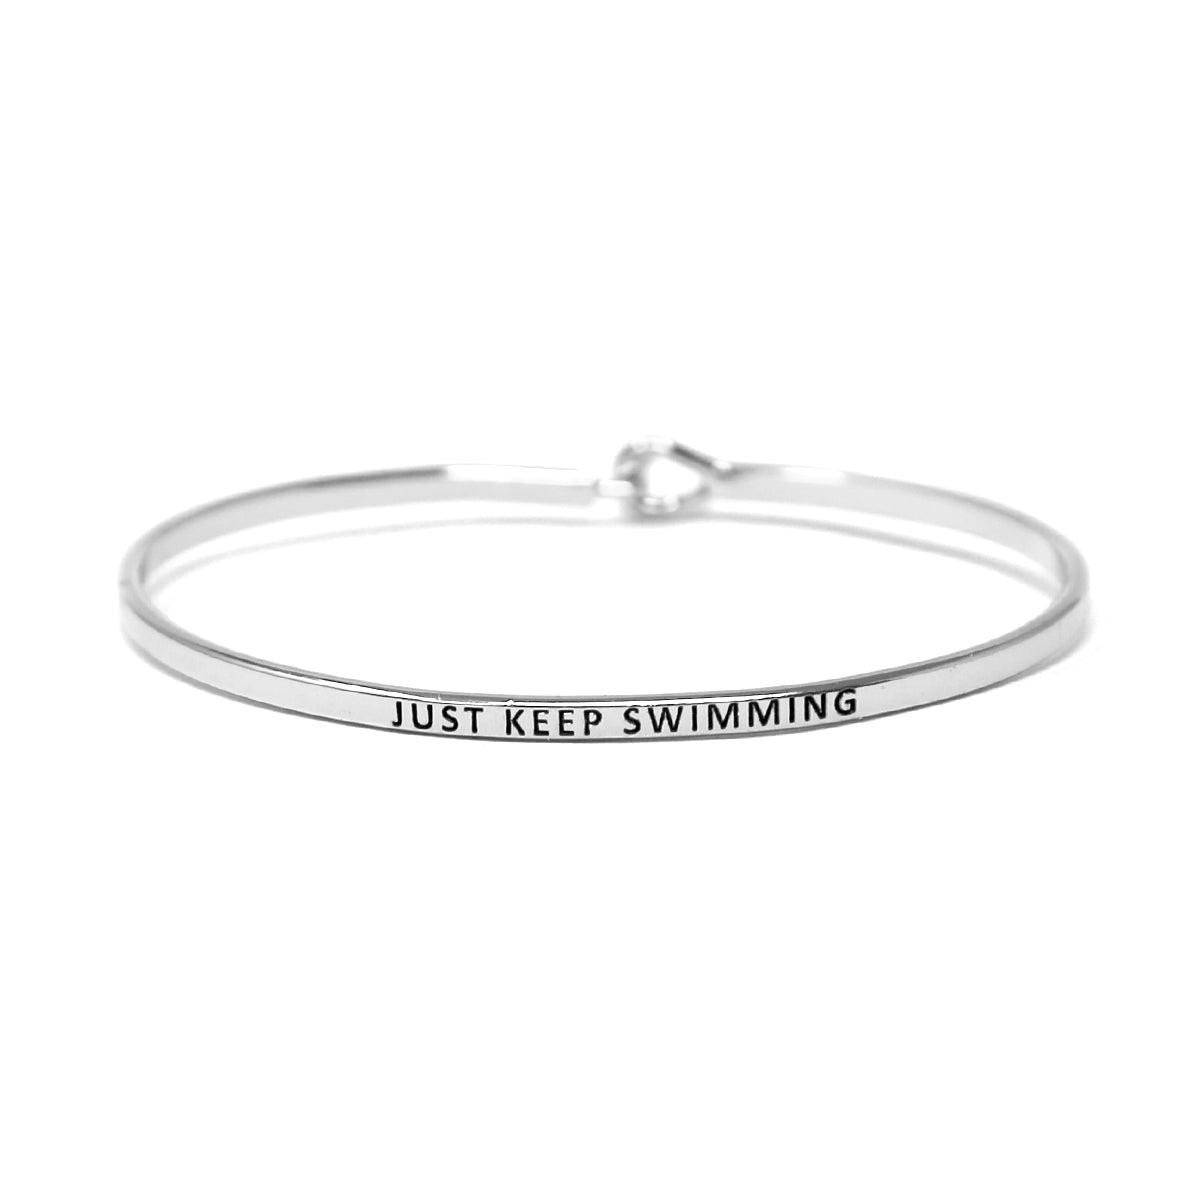 JUST KEEP SWIMMING Inspirational Message Bracelet